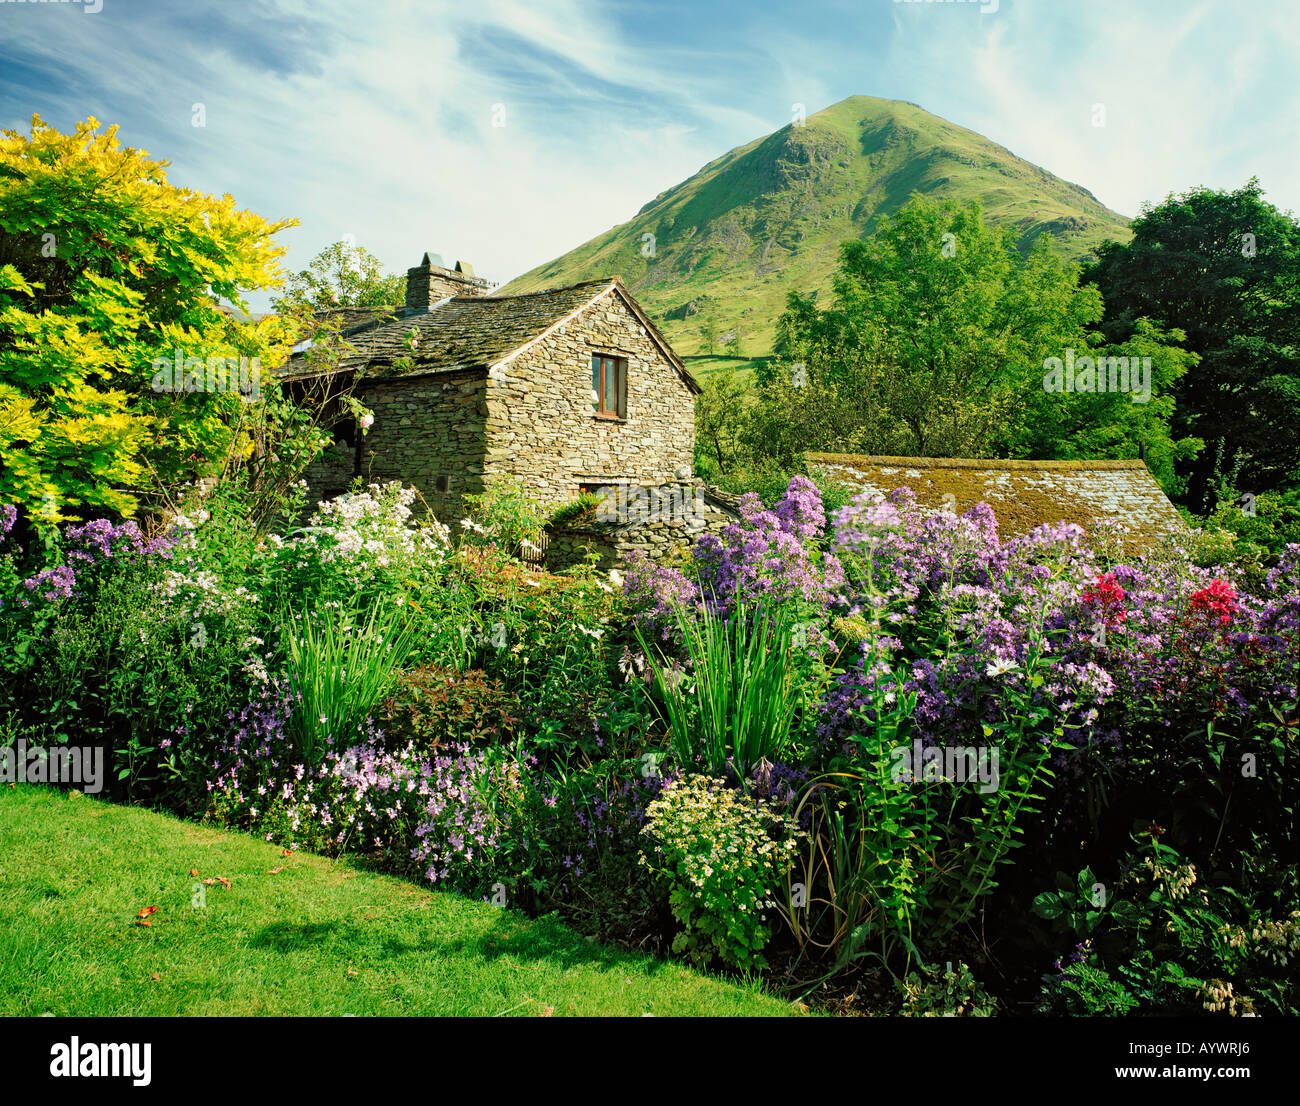 GB  CUMBRIA LAKE DISTRICT NATIONAL PARK HARTSOP AND HARTSOP DODD Stock Photo